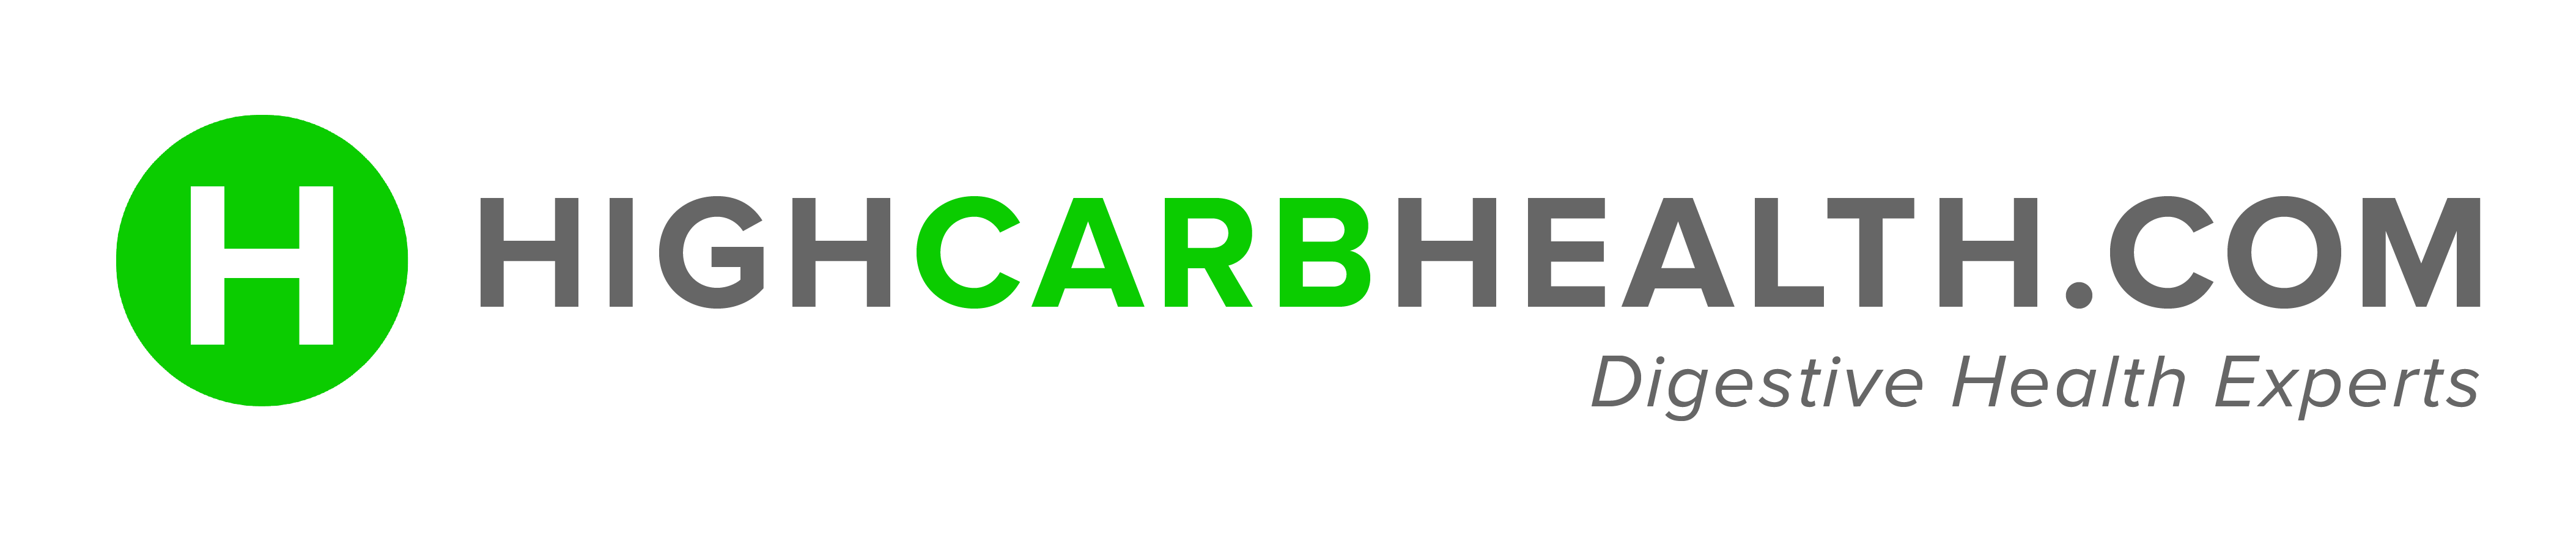 High Carb Health Ltd.